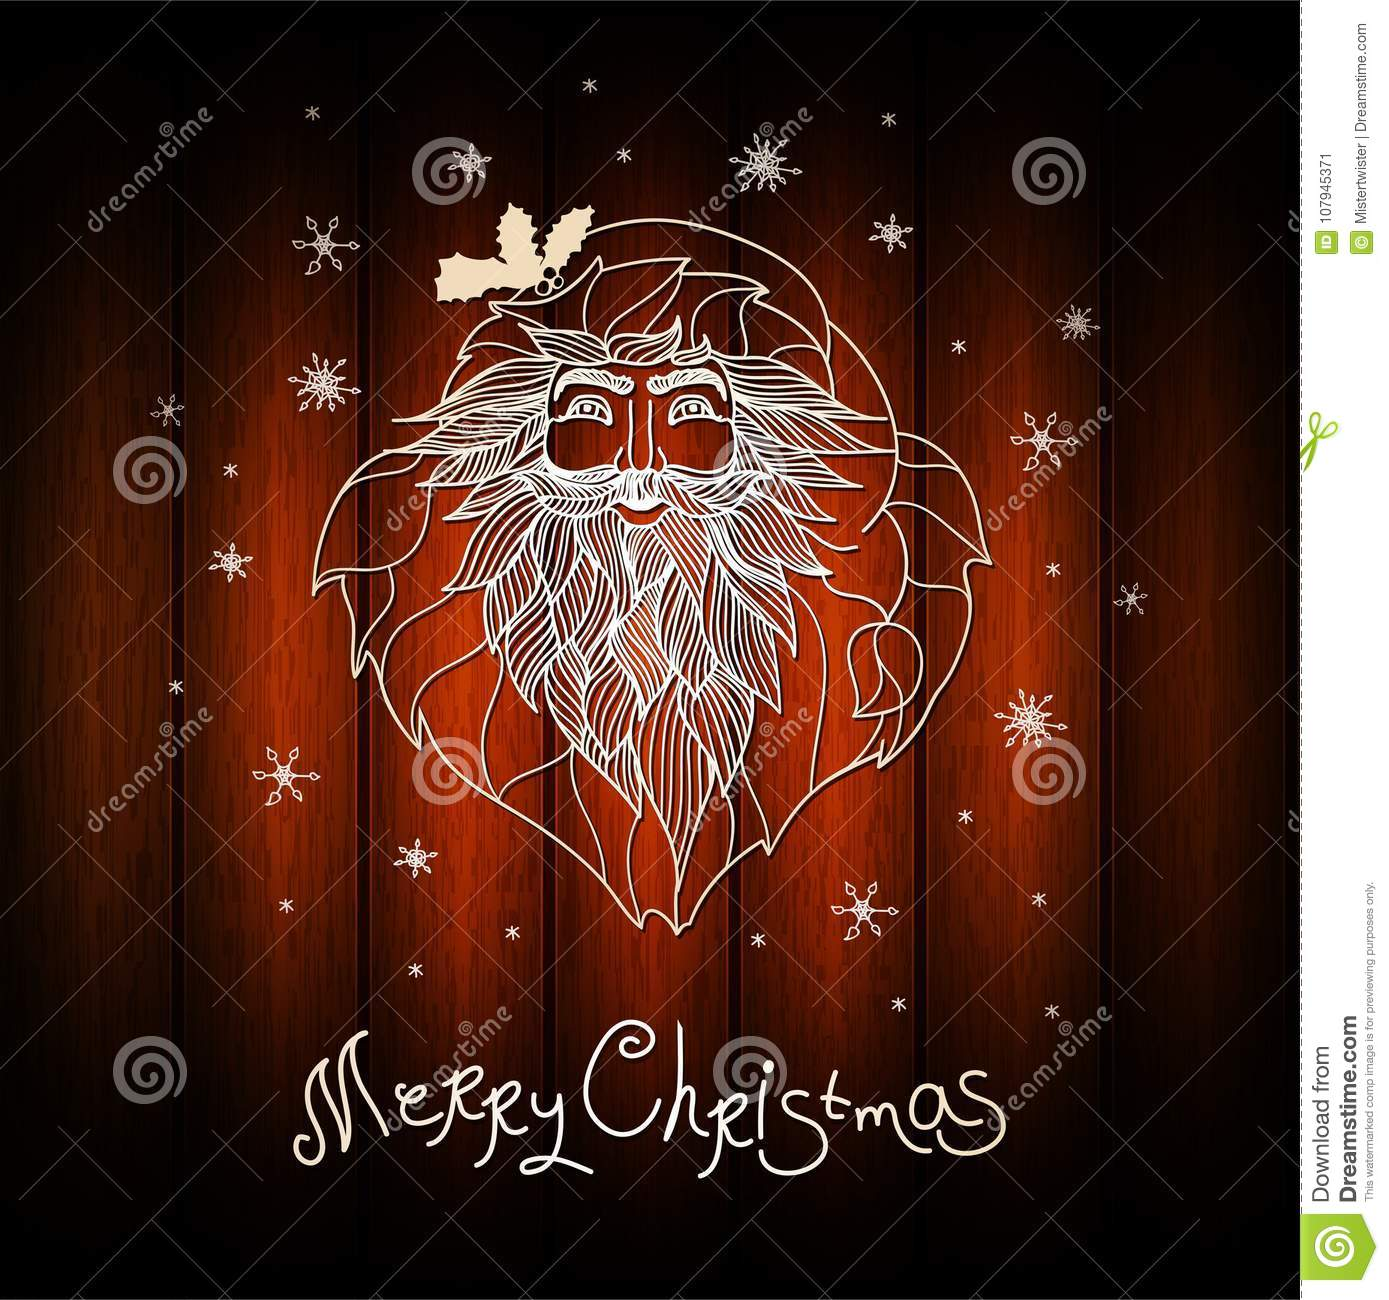 Unusual christmas card design wood background with hand drawn santa unusual christmas card design wood background with hand drawn santa claus xmas card with m4hsunfo